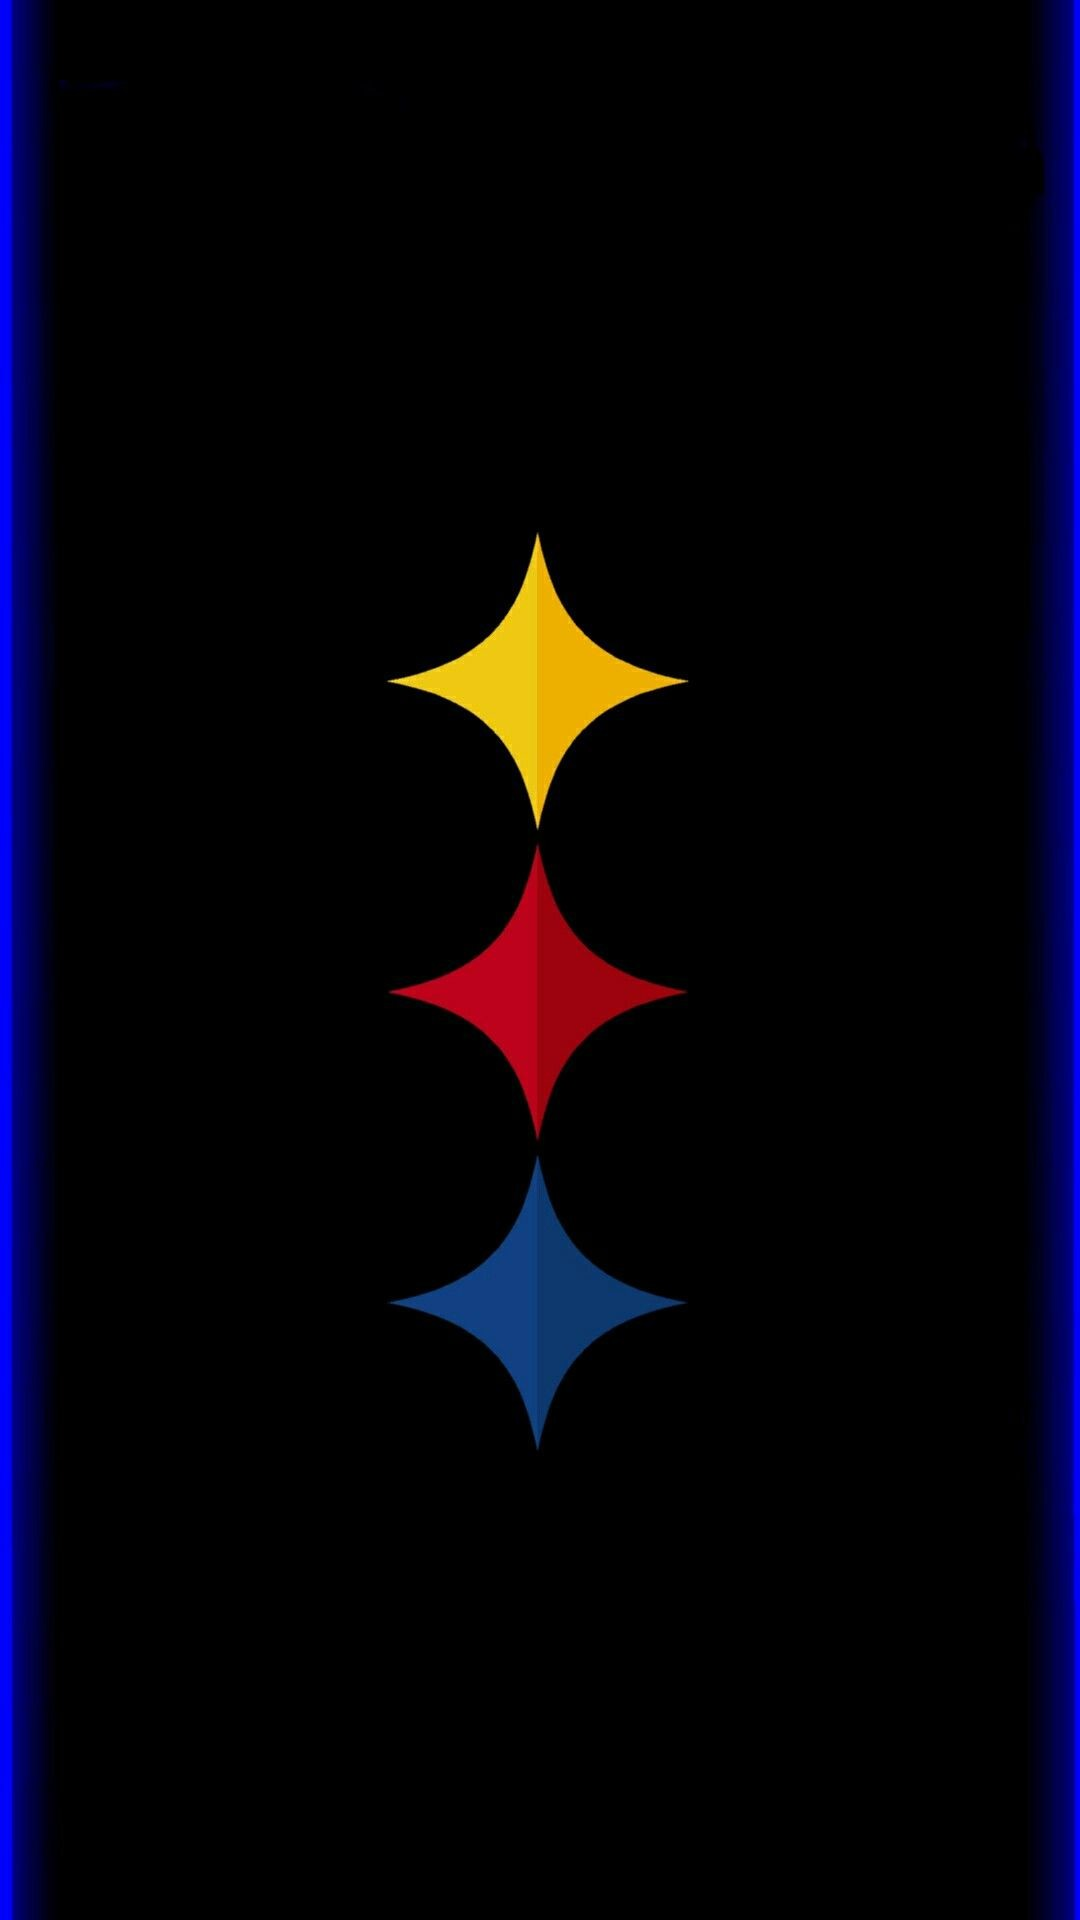 Res: 1080x1920, Wallpapers Steelers Football Game, Best Football Team, Steelers Season,  Pittsburgh Steelers Wallpaper,